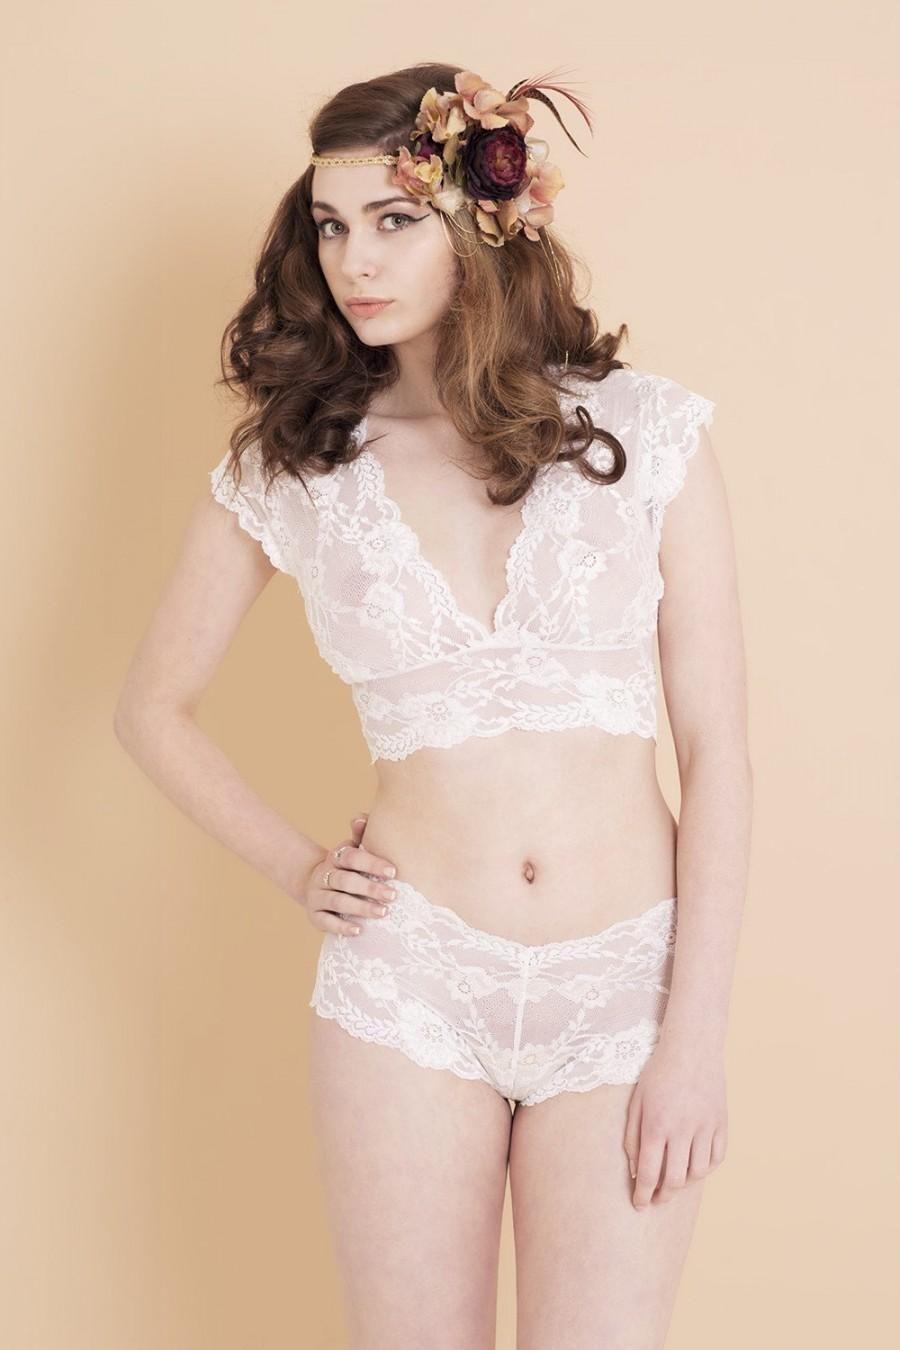 Свадьба - Ivory White Floral Lace Lingerie Set. Bralette and Matching French Knickers. Perfect as bridal lingerie. Handmade from Brighton Lace.